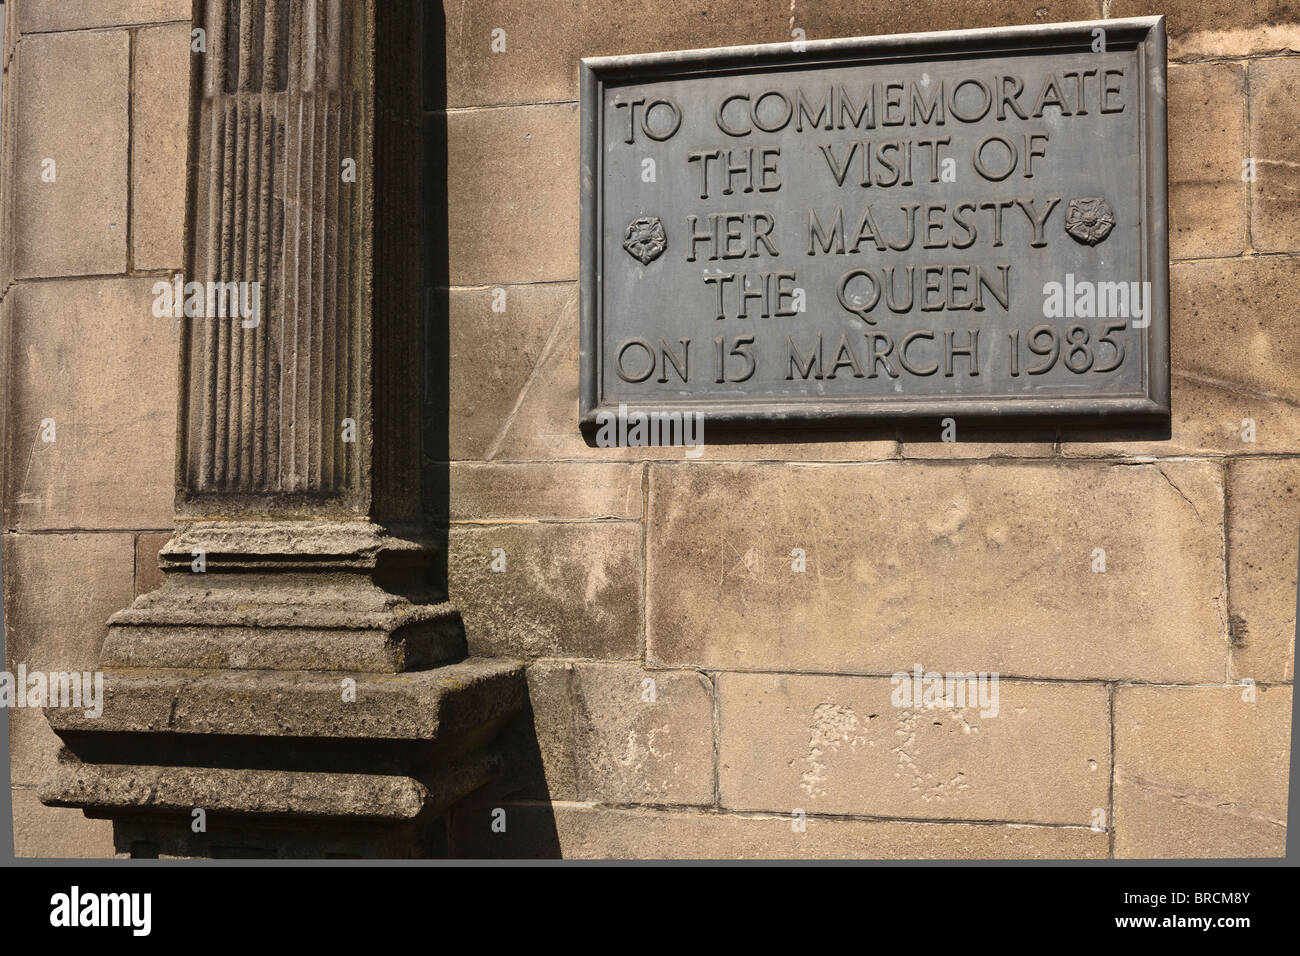 Plaque commemorating the Queen's visit to the Queen Elizabeth's Grammar School, Ashbourne, Derbyshire. - Stock Image